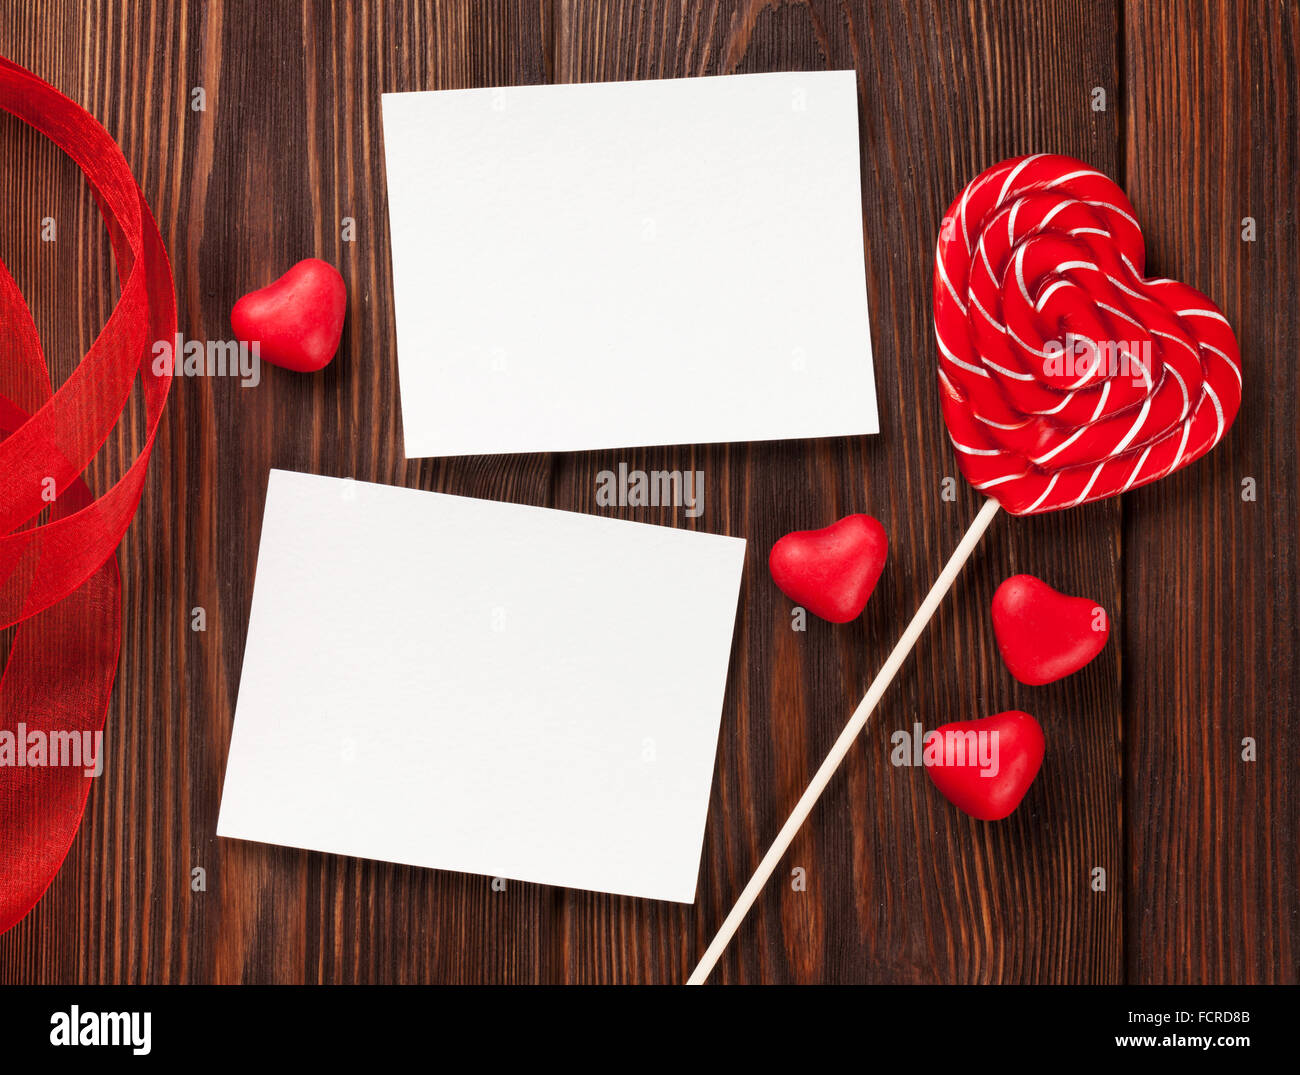 Valentines Day Photo Frames Stock Photos & Valentines Day Photo ...